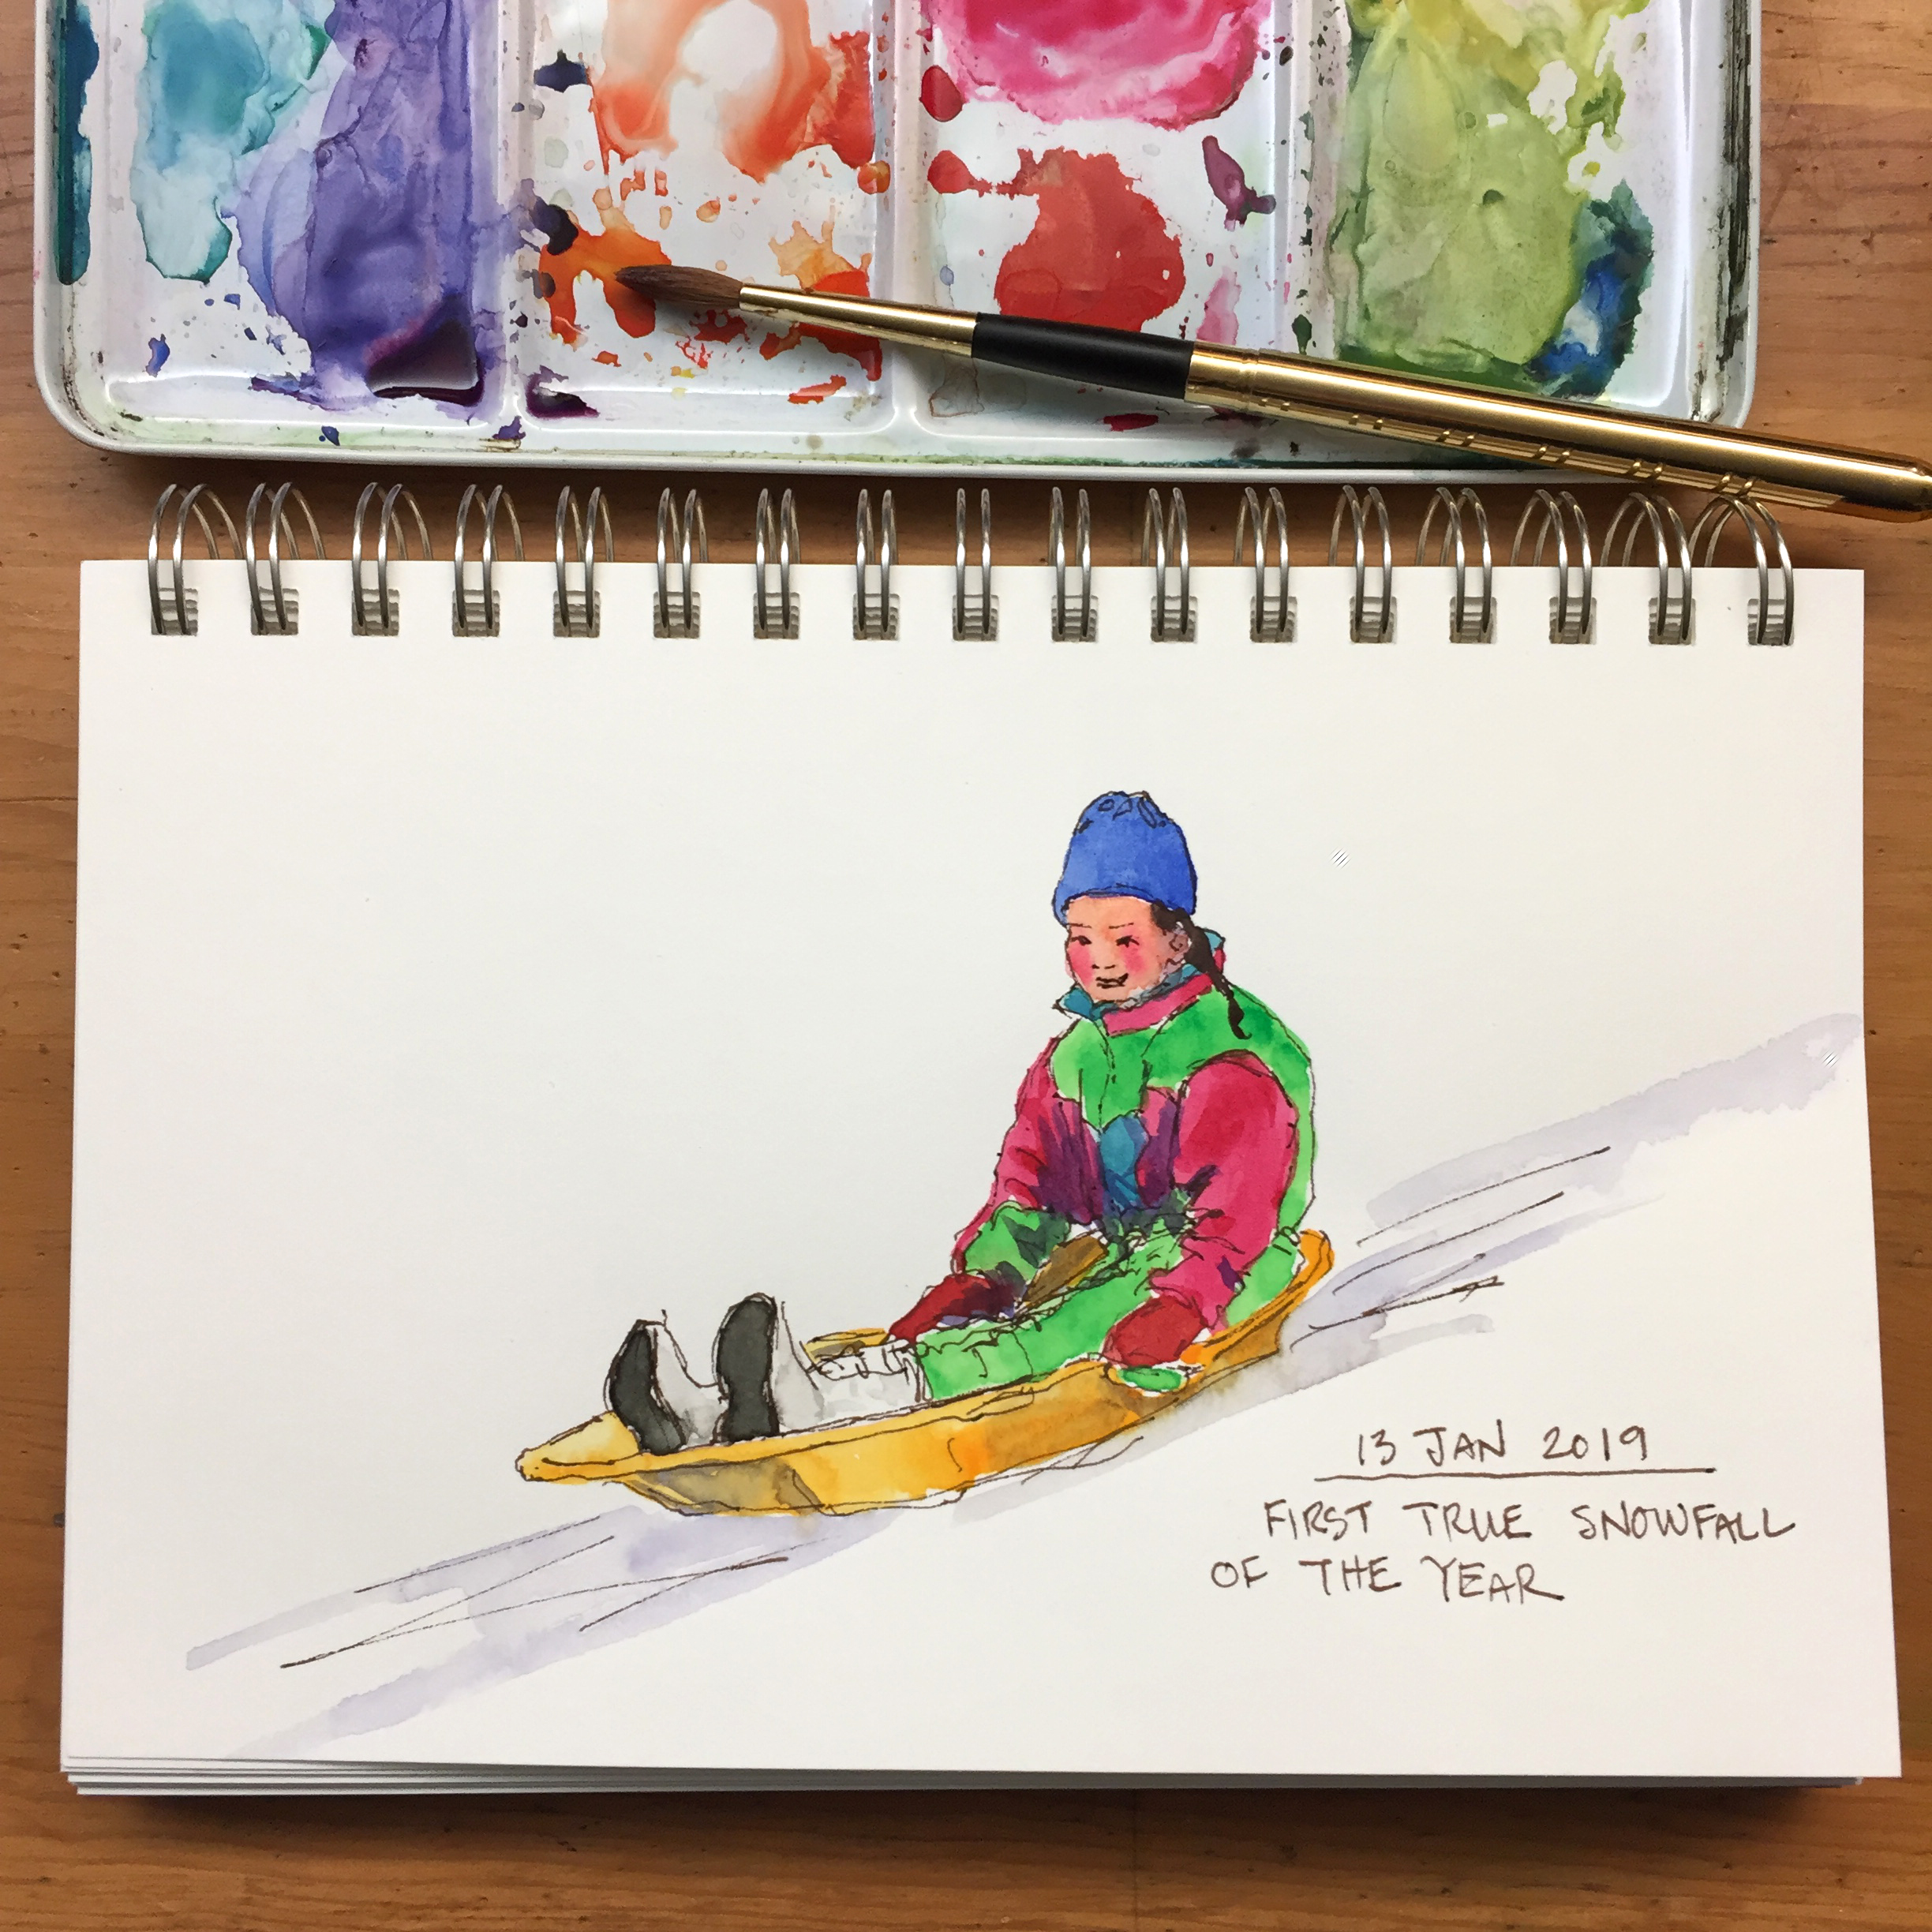 Day 13: First snow of the year. Naomi sledding